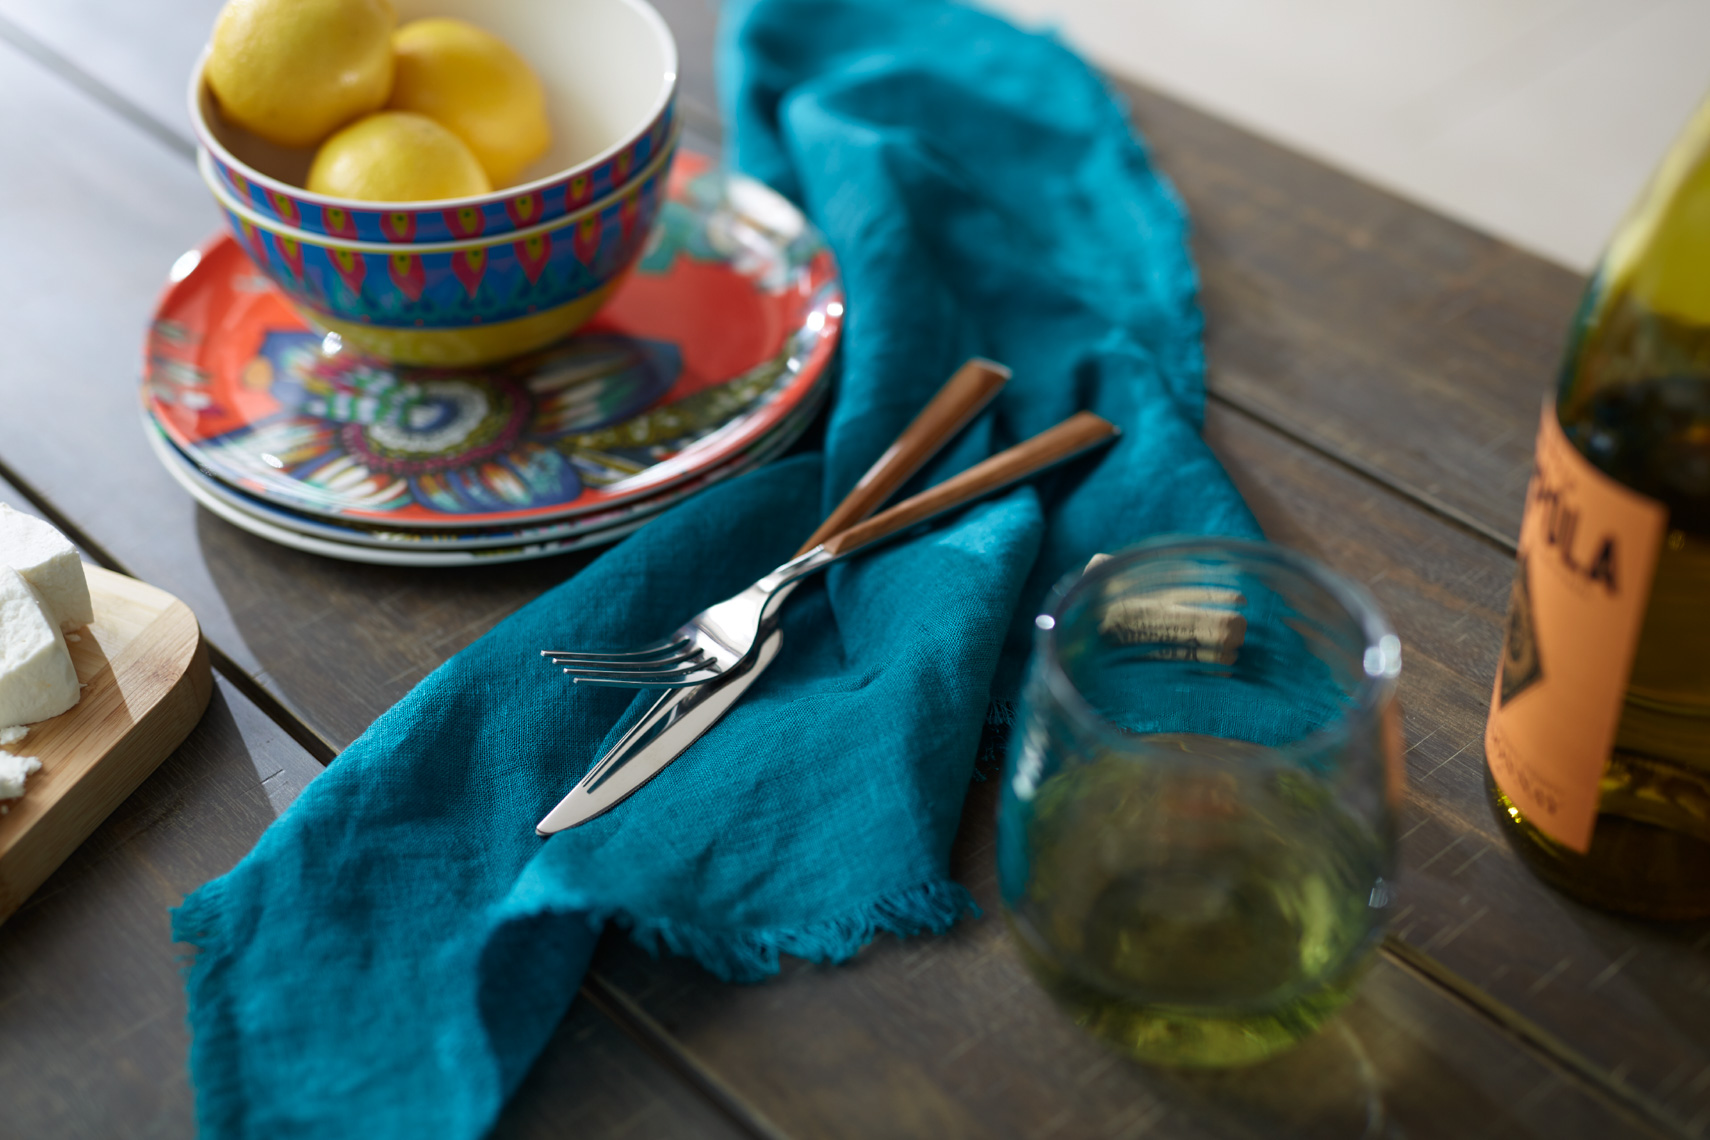 decorative plates and bowl with lemons and blue hand towel with silverware